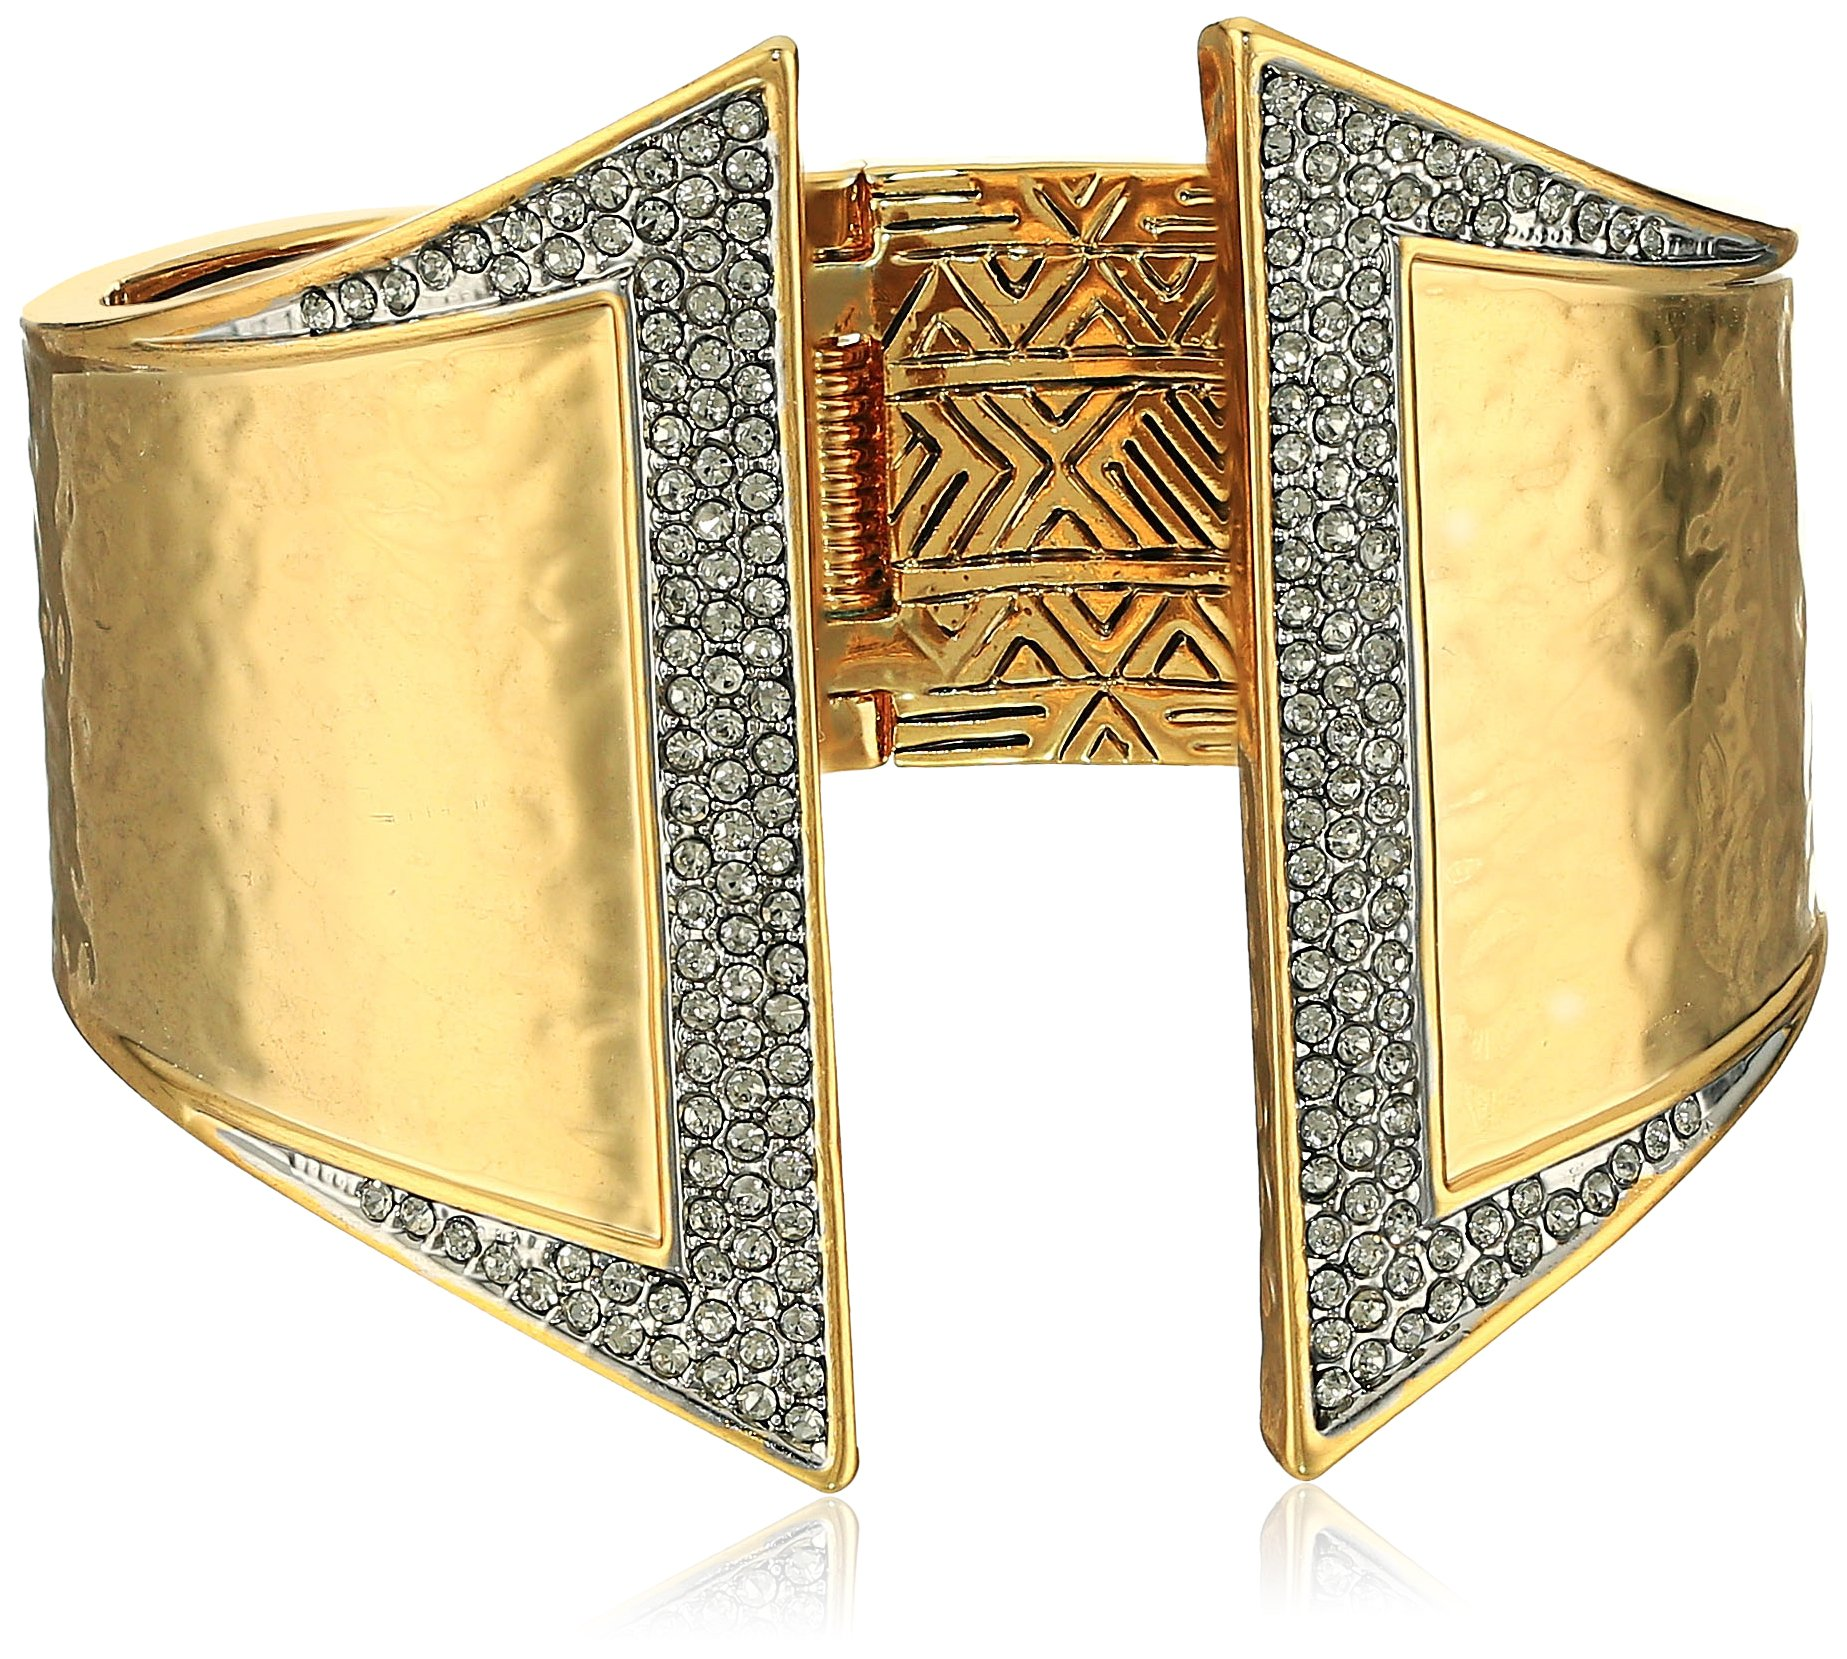 House of Harlow 1960 Golden Scutum Hinge Cuff Bracelet